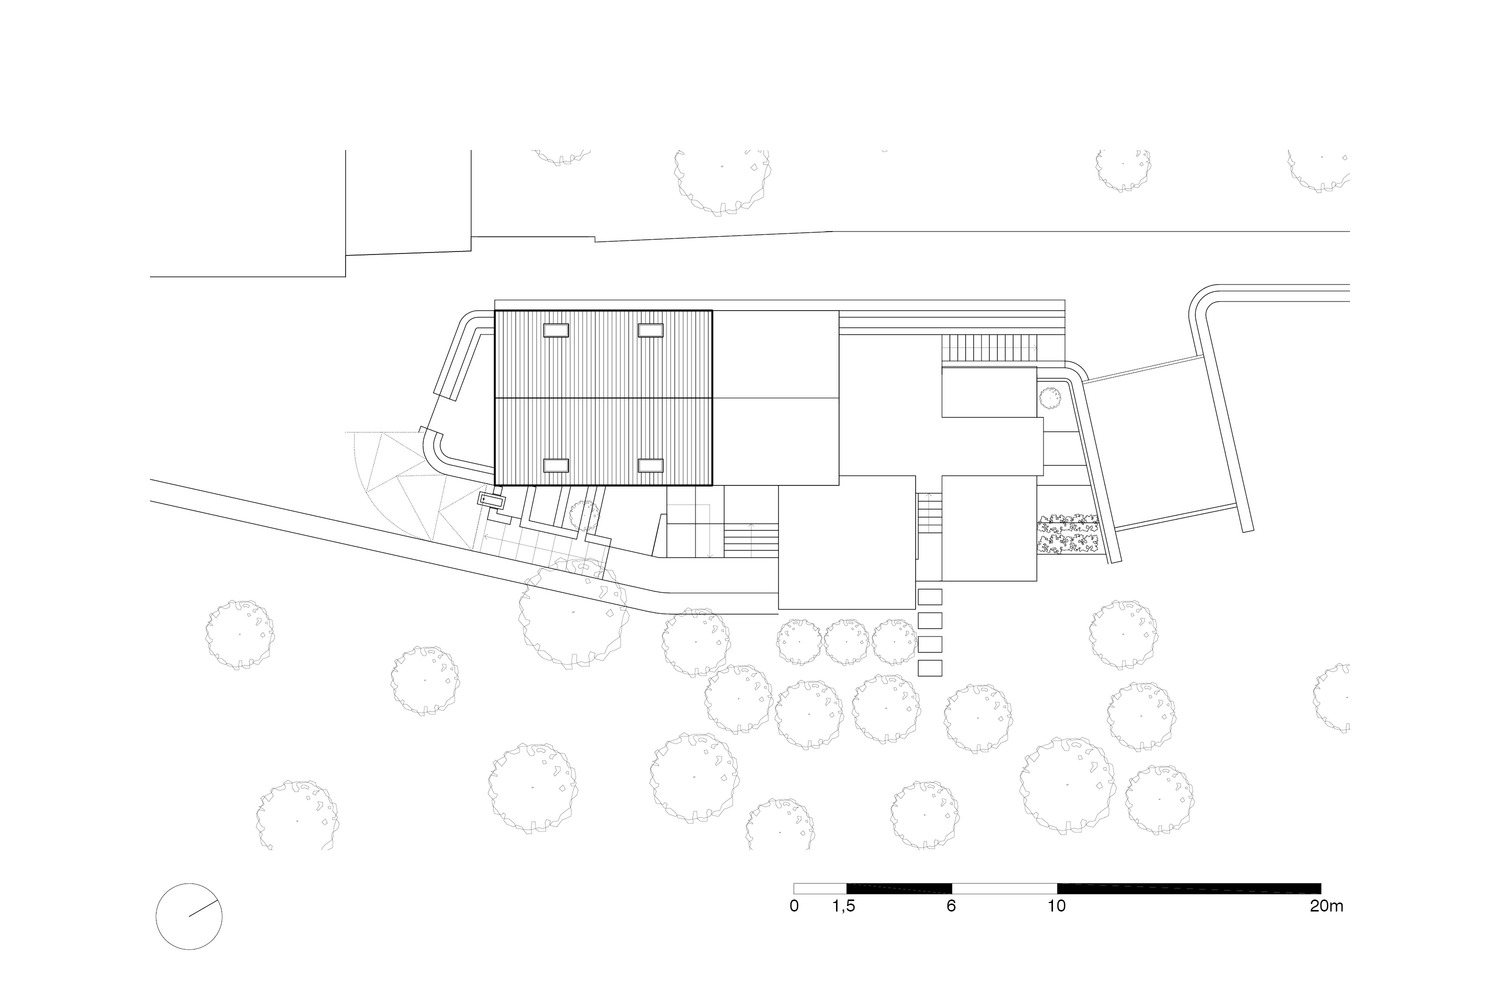 medium resolution of house over cave plan 02